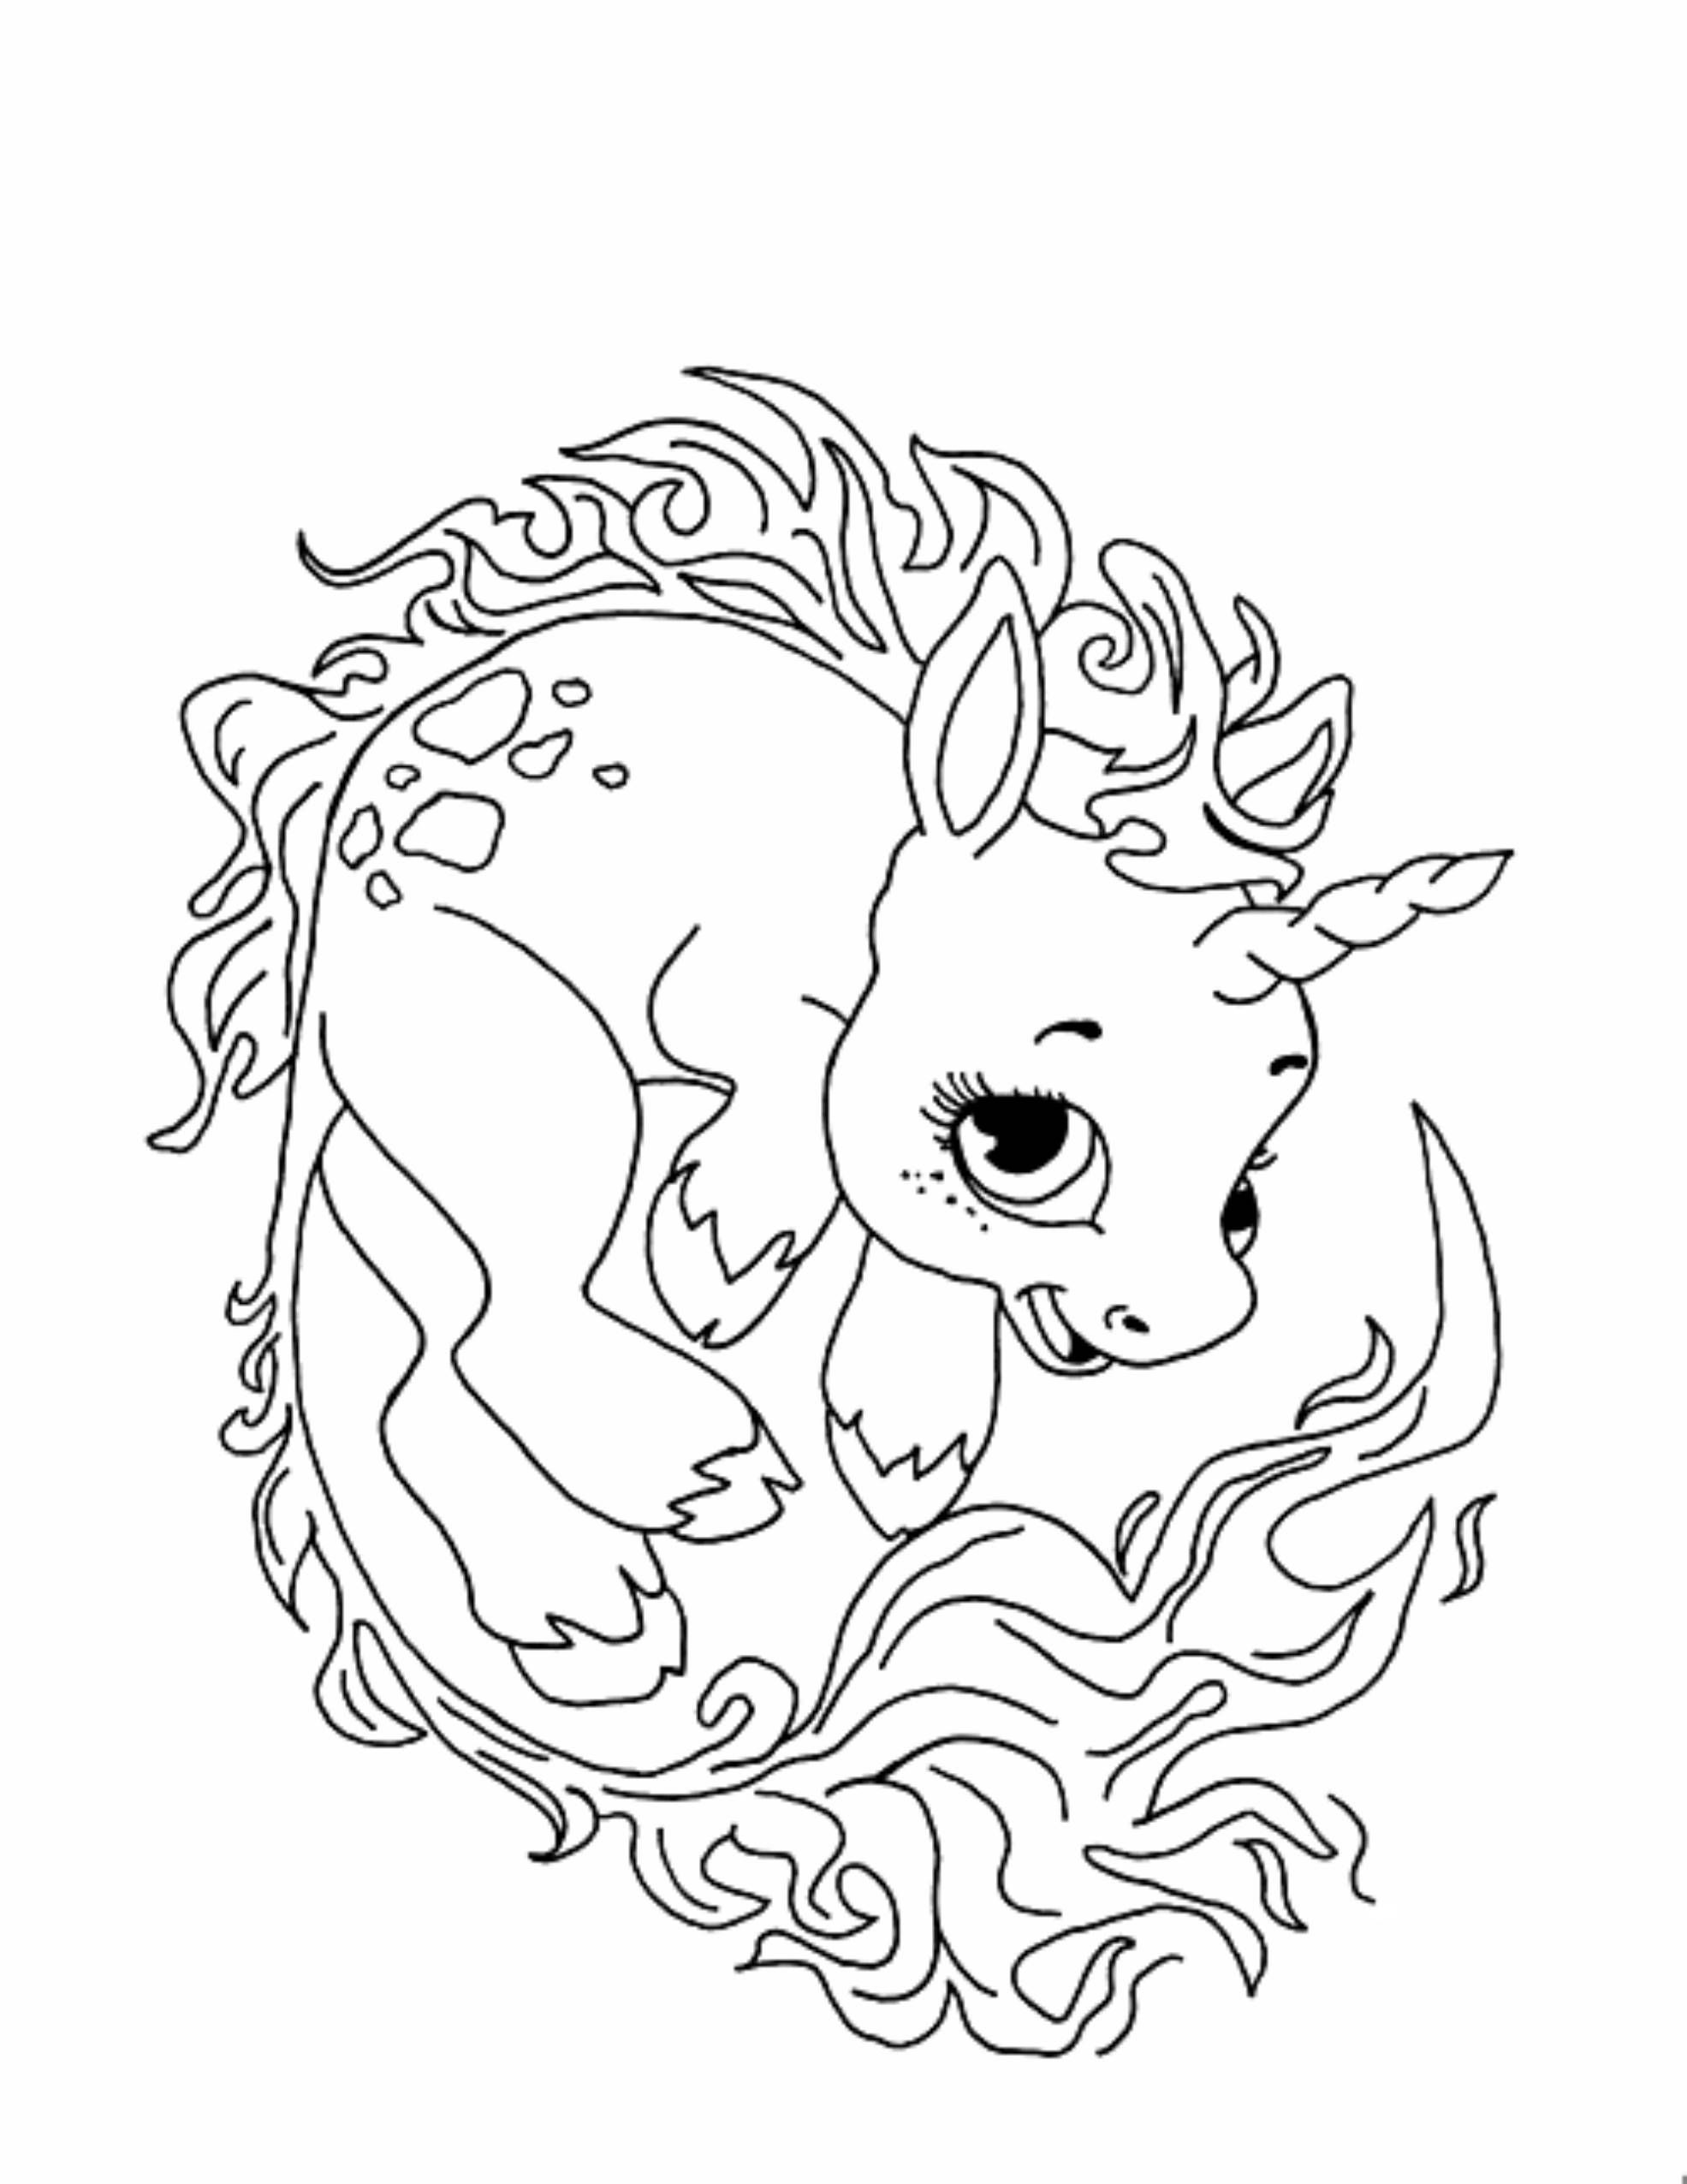 Cute Coloring Pages For Adults  cute unicorn coloring pages